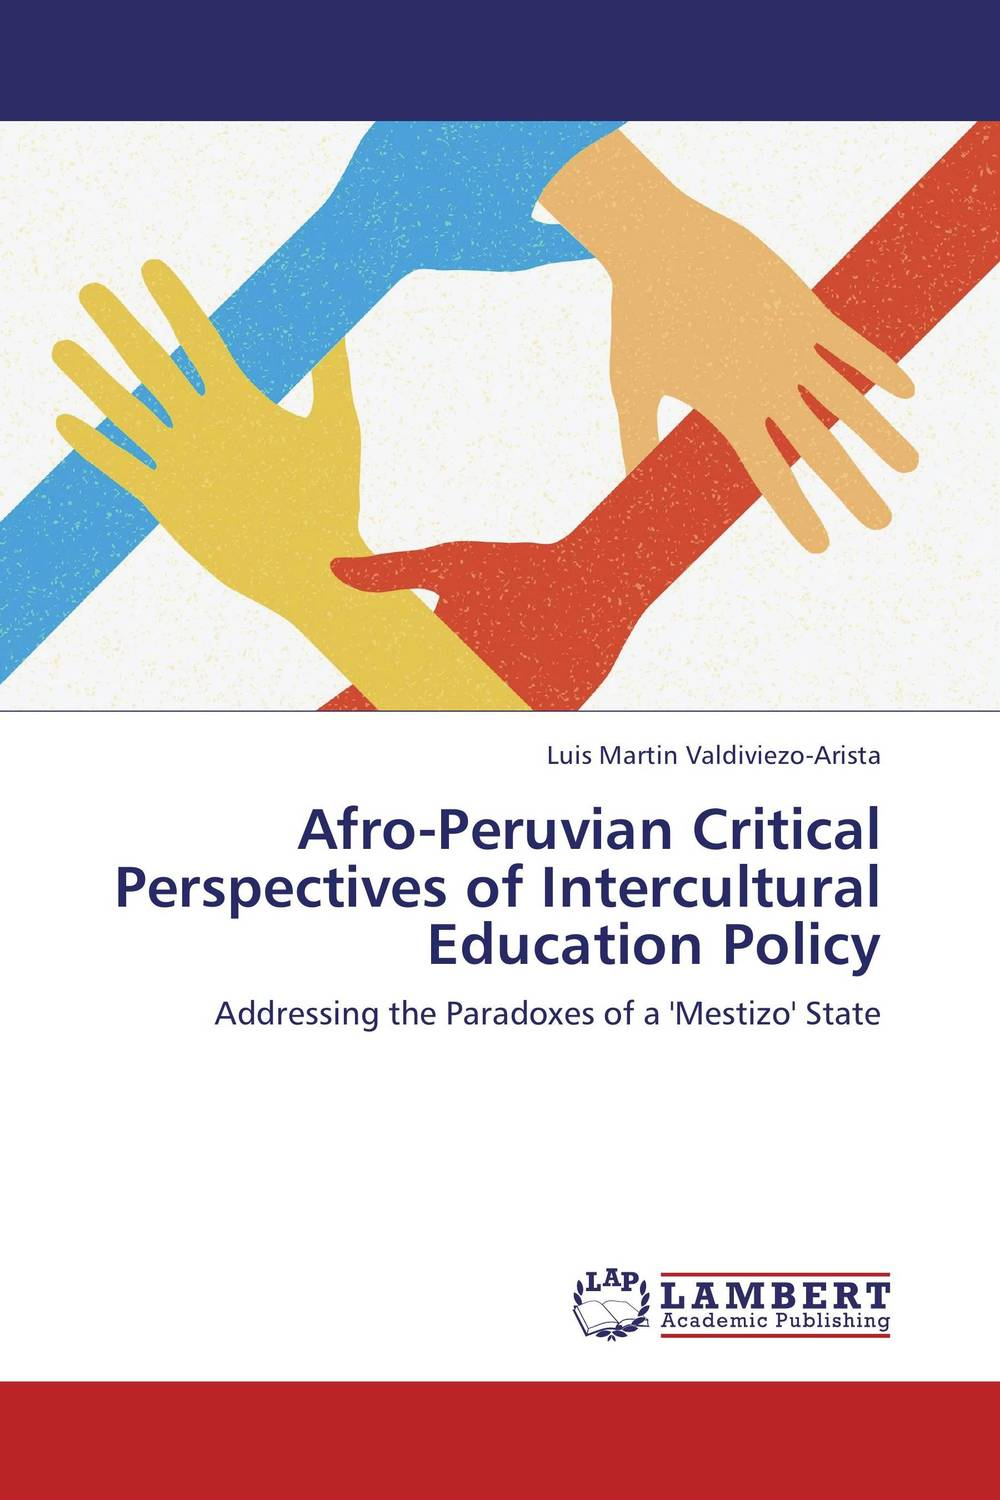 Afro-Peruvian Critical Perspectives of Intercultural Education Policy кольцо коюз топаз кольцо т101018021